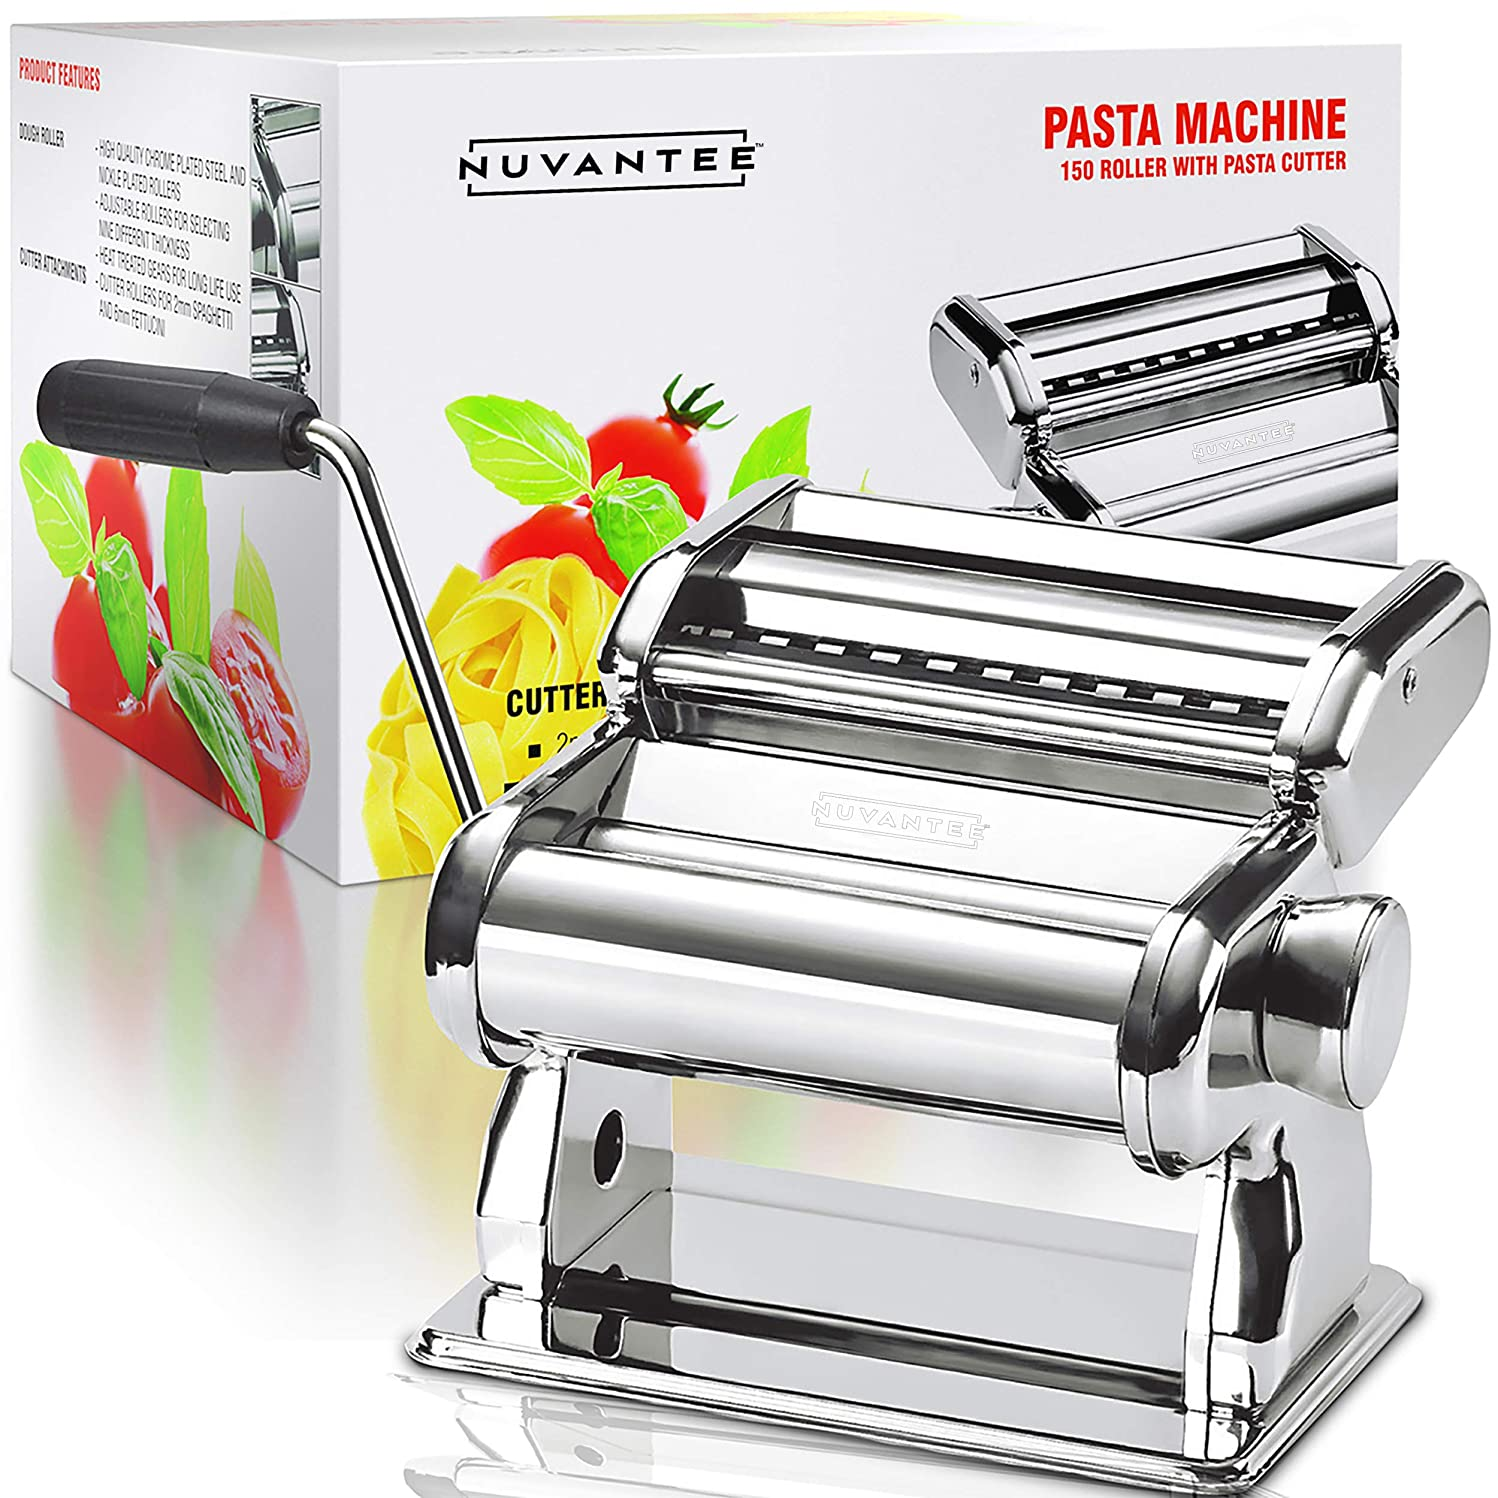 Nuvantee Pasta Maker - Highest Quality Pasta Machine - 150 Roller with Pasta Cutter - 7 Adjustable Thickness Settings